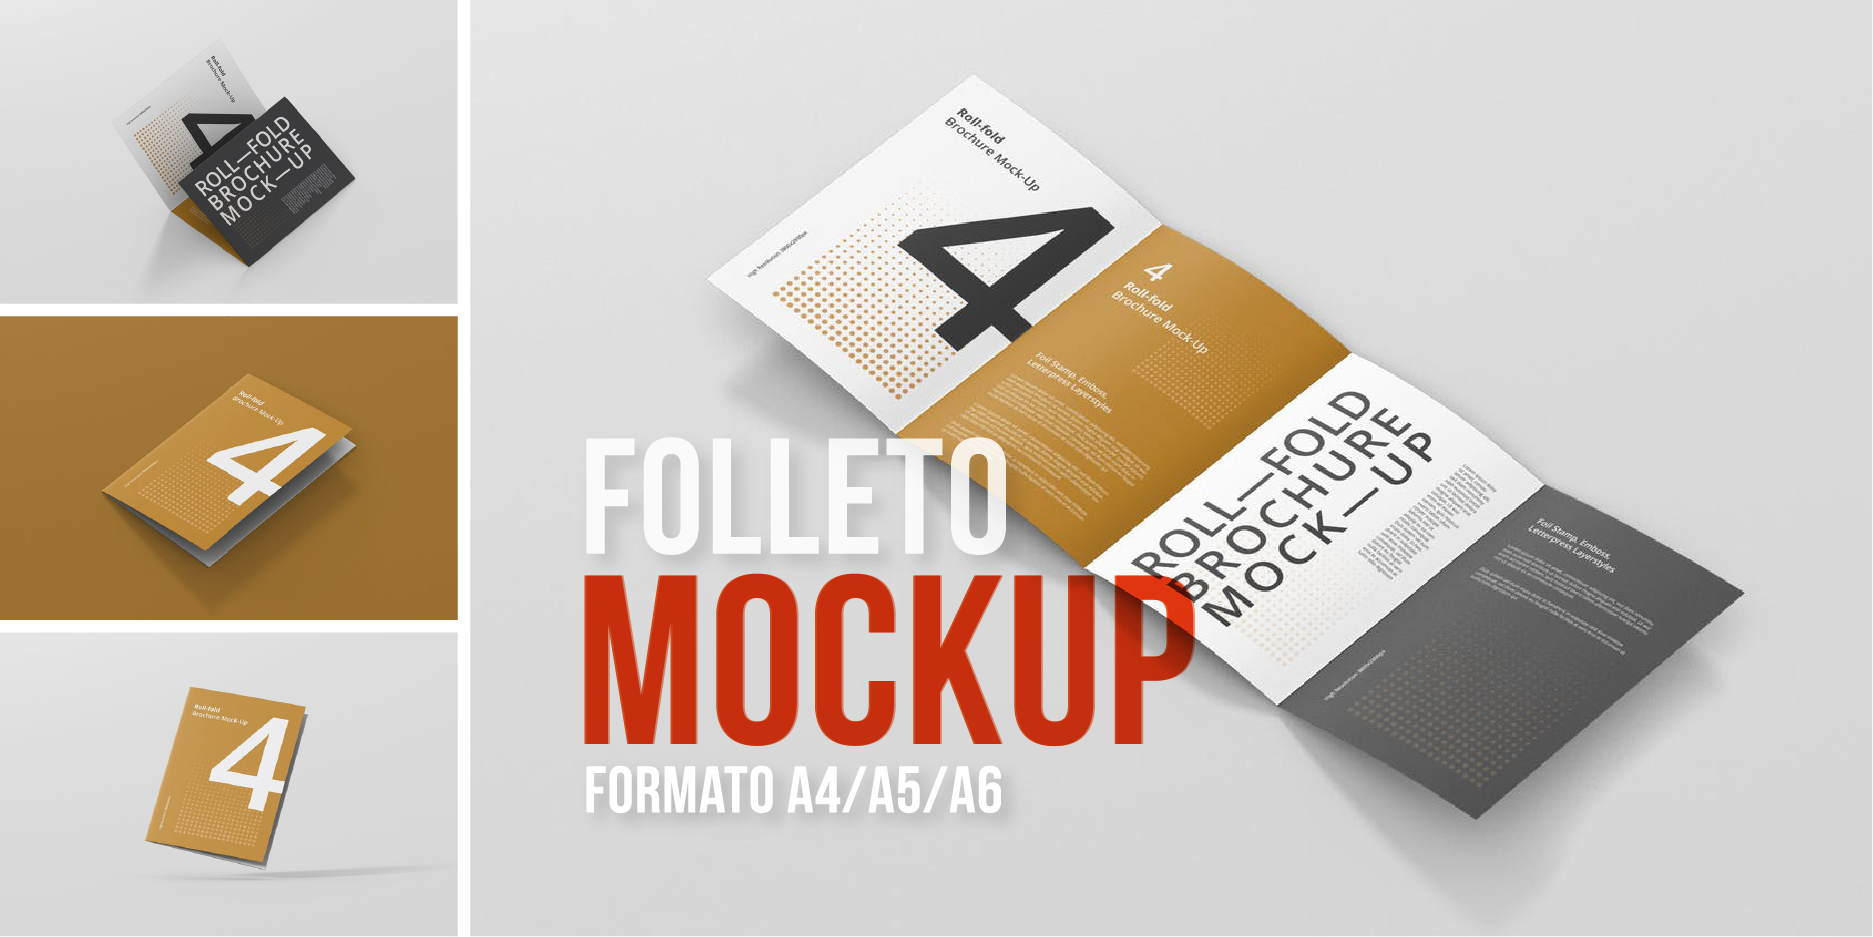 A4 folleto mockups - 12 templates